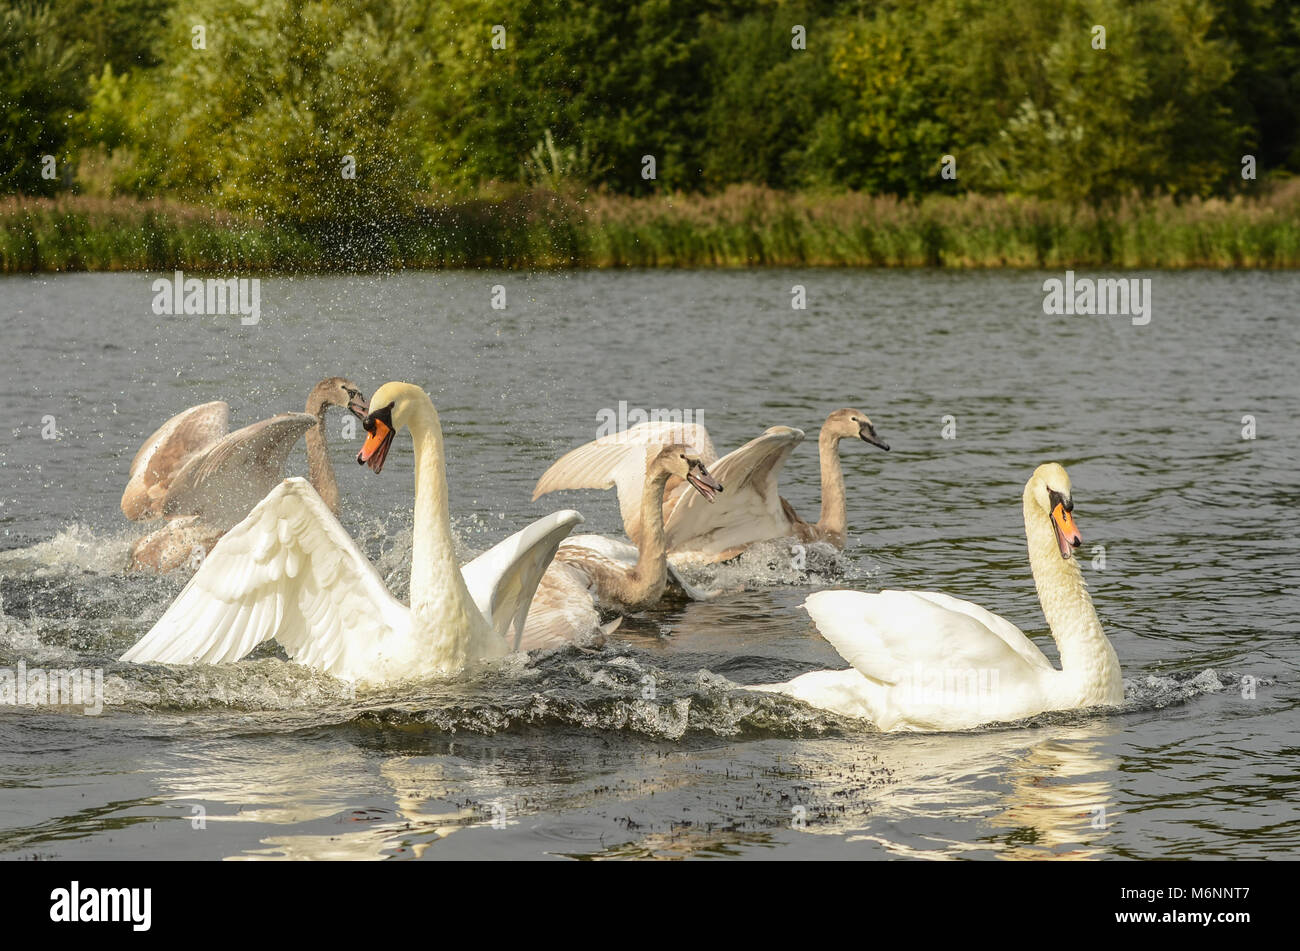 A family of swans flapping their wings on a local lake - Stock Image